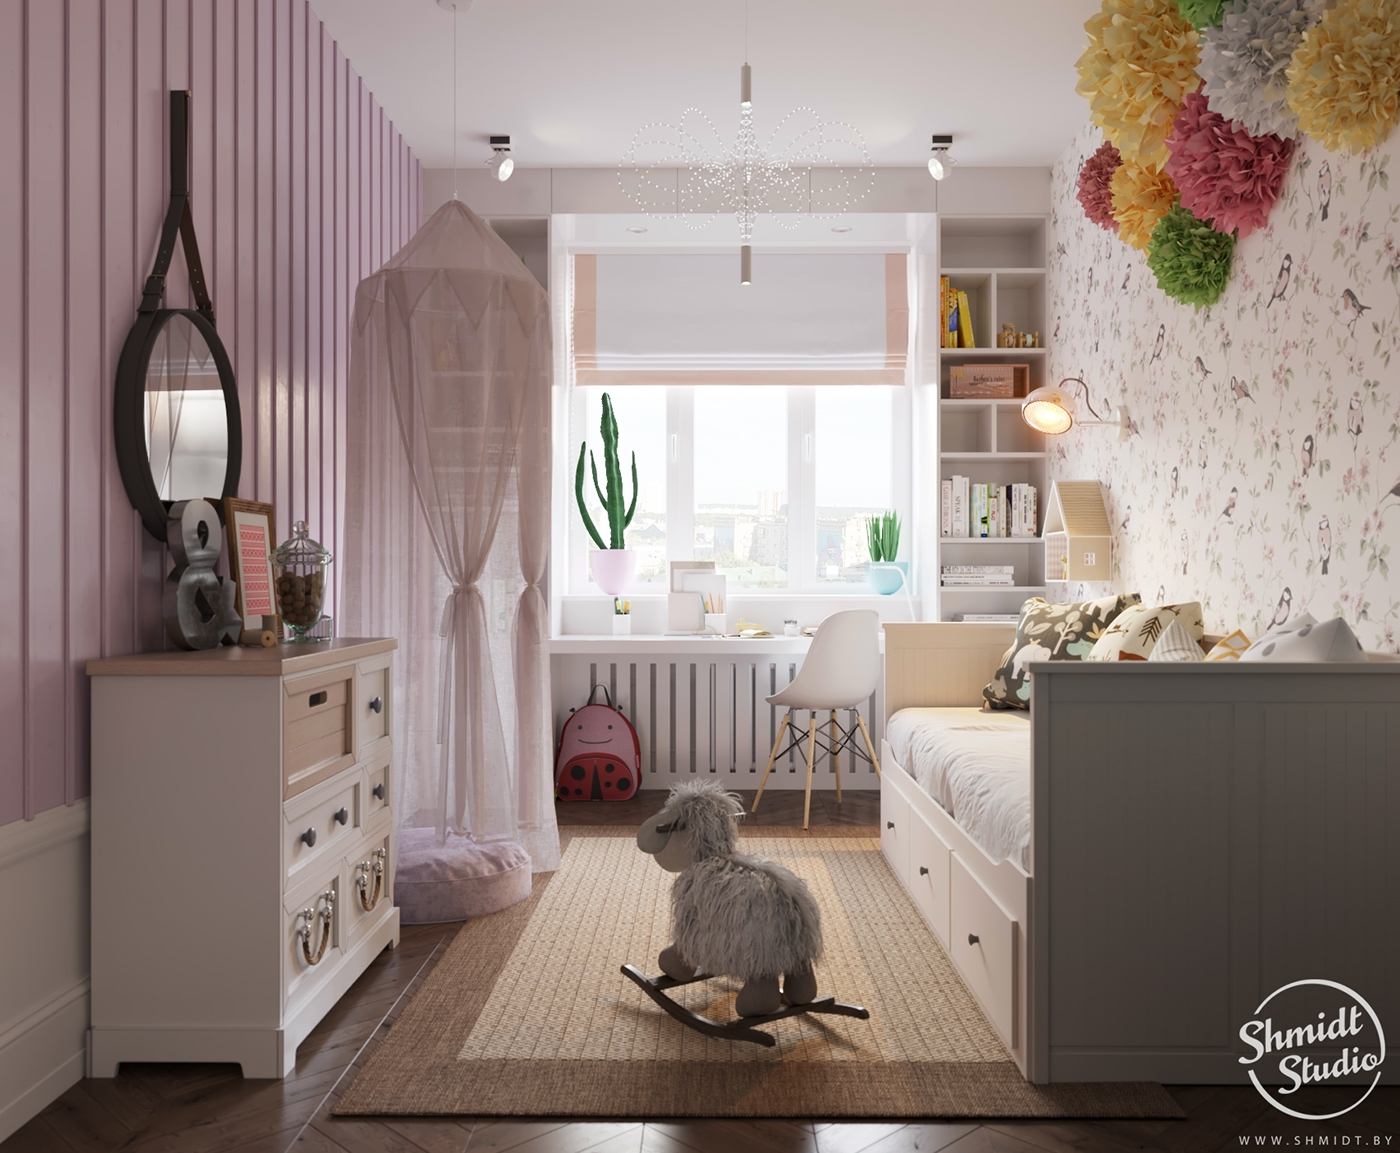 A Scandinavian Chic Style 3 Bedroom Apartment For A Young